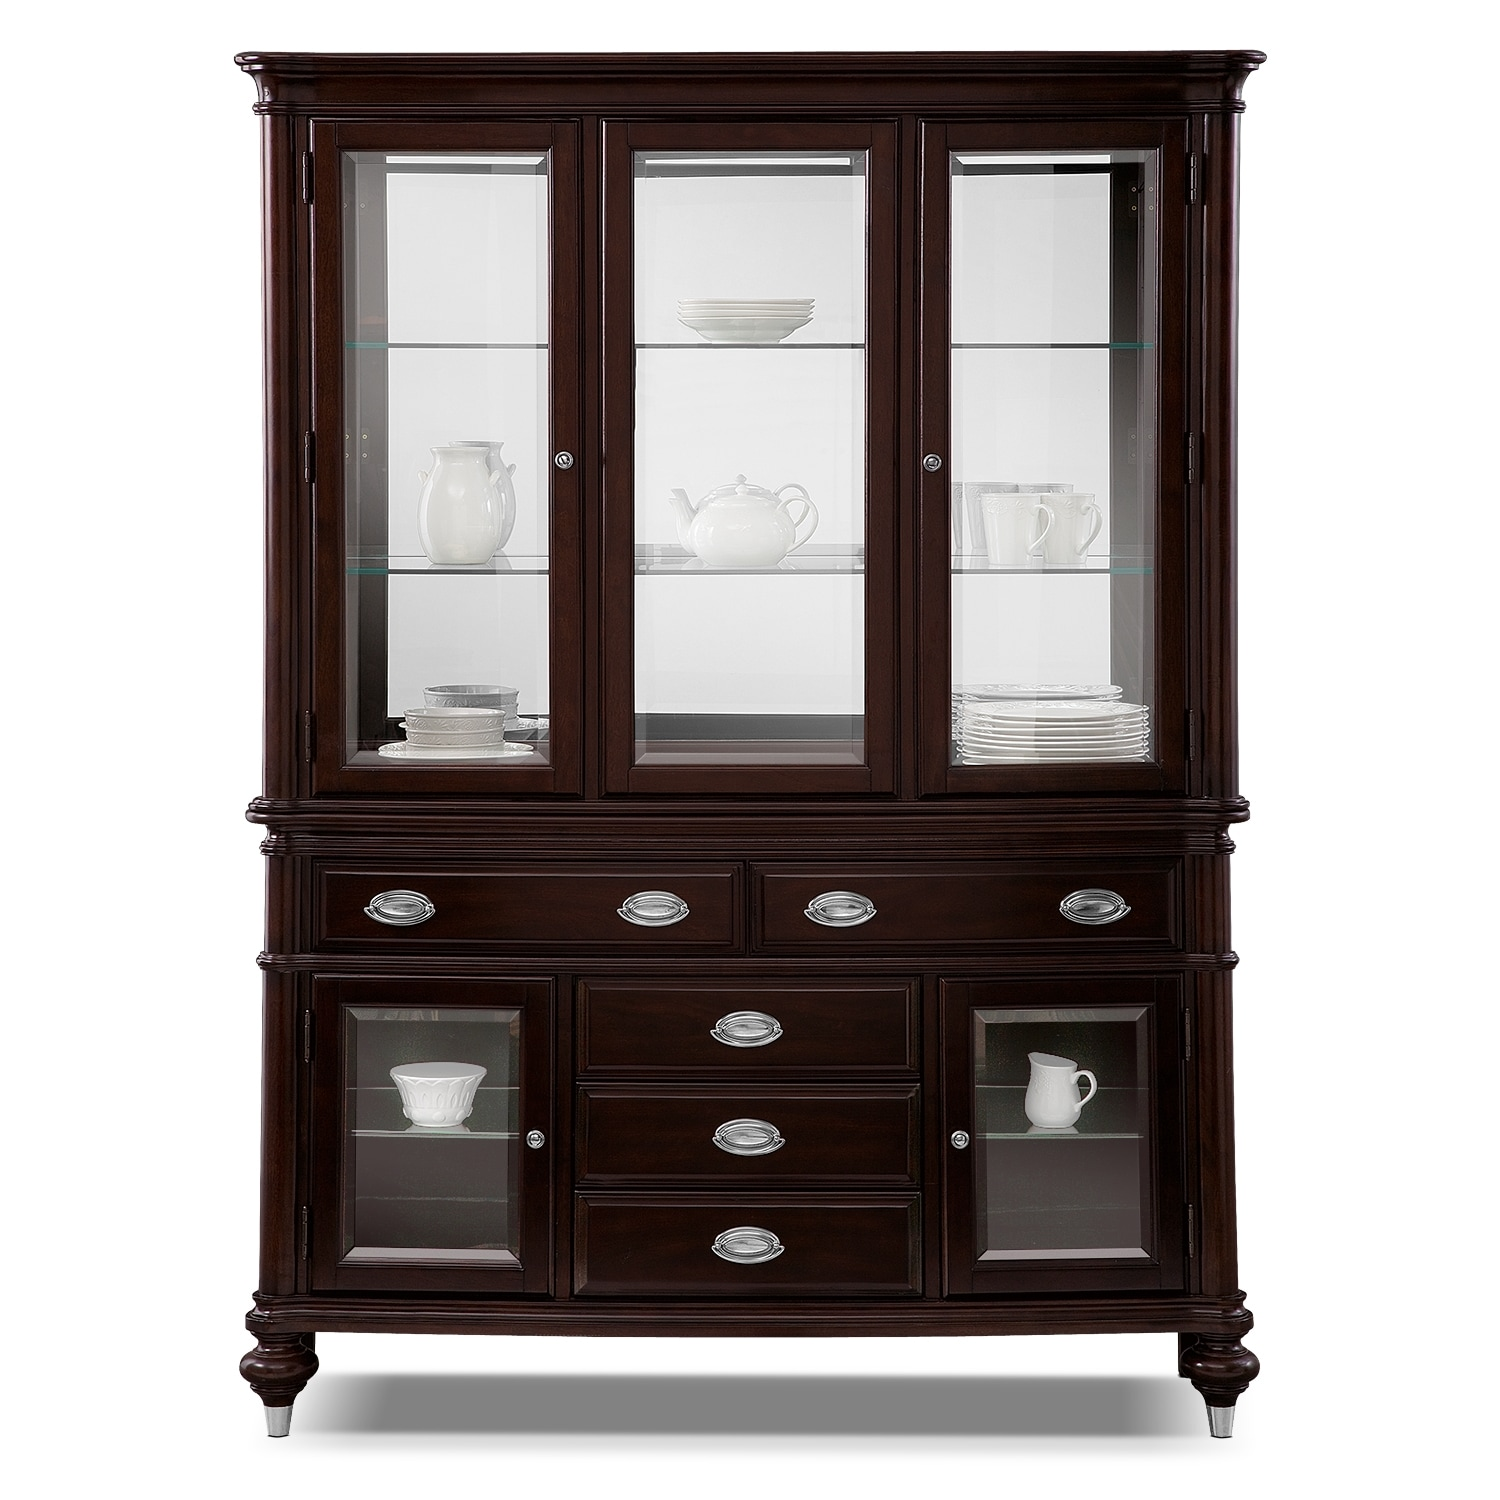 Dining Room Sideboards And Buffets: Esquire Buffet And Hutch - Cherry